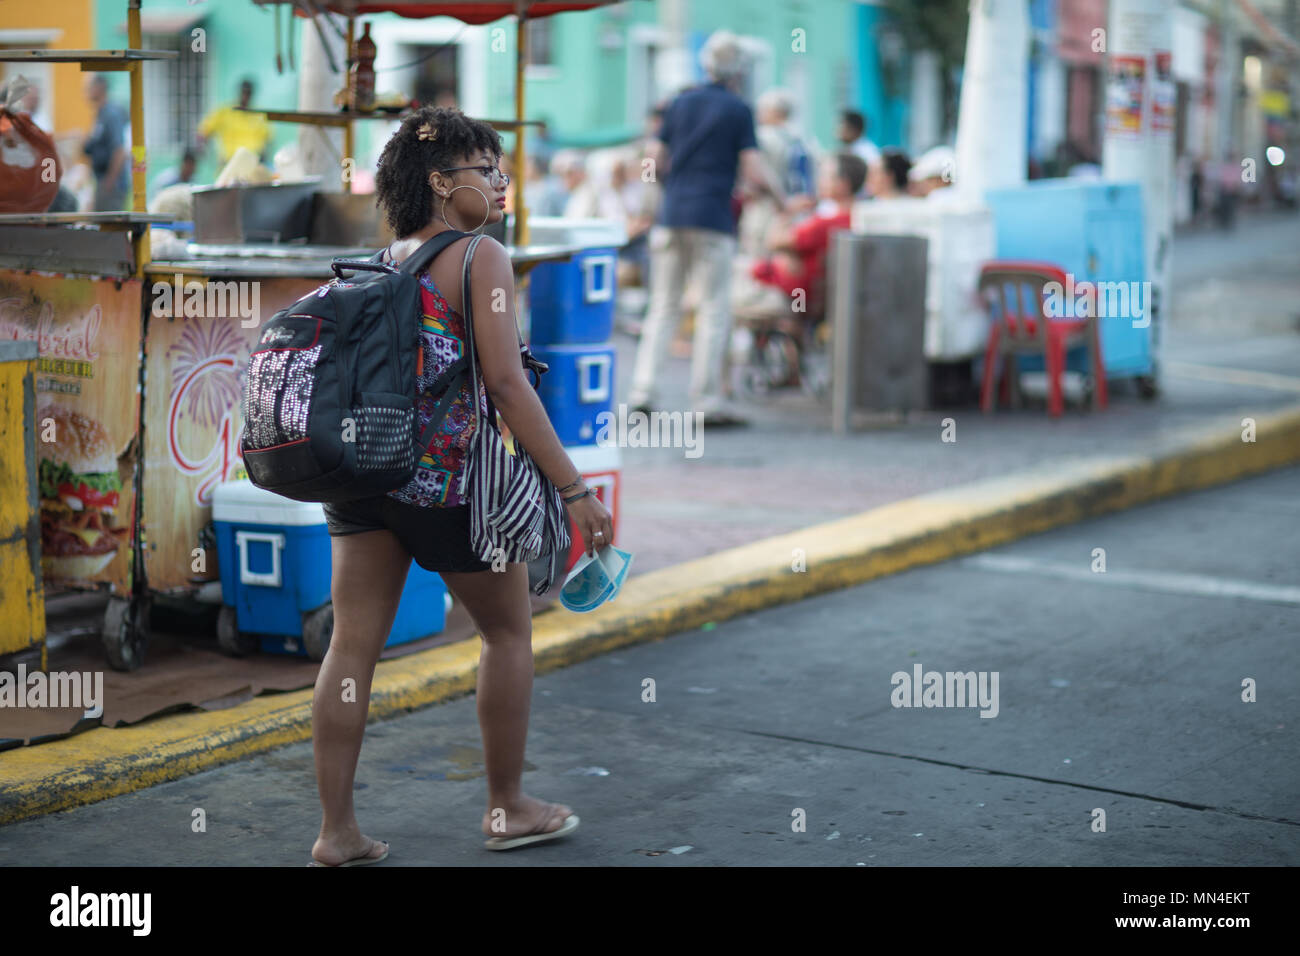 A backpacker, Getsemani, Cartagena, Colombia - Stock Image